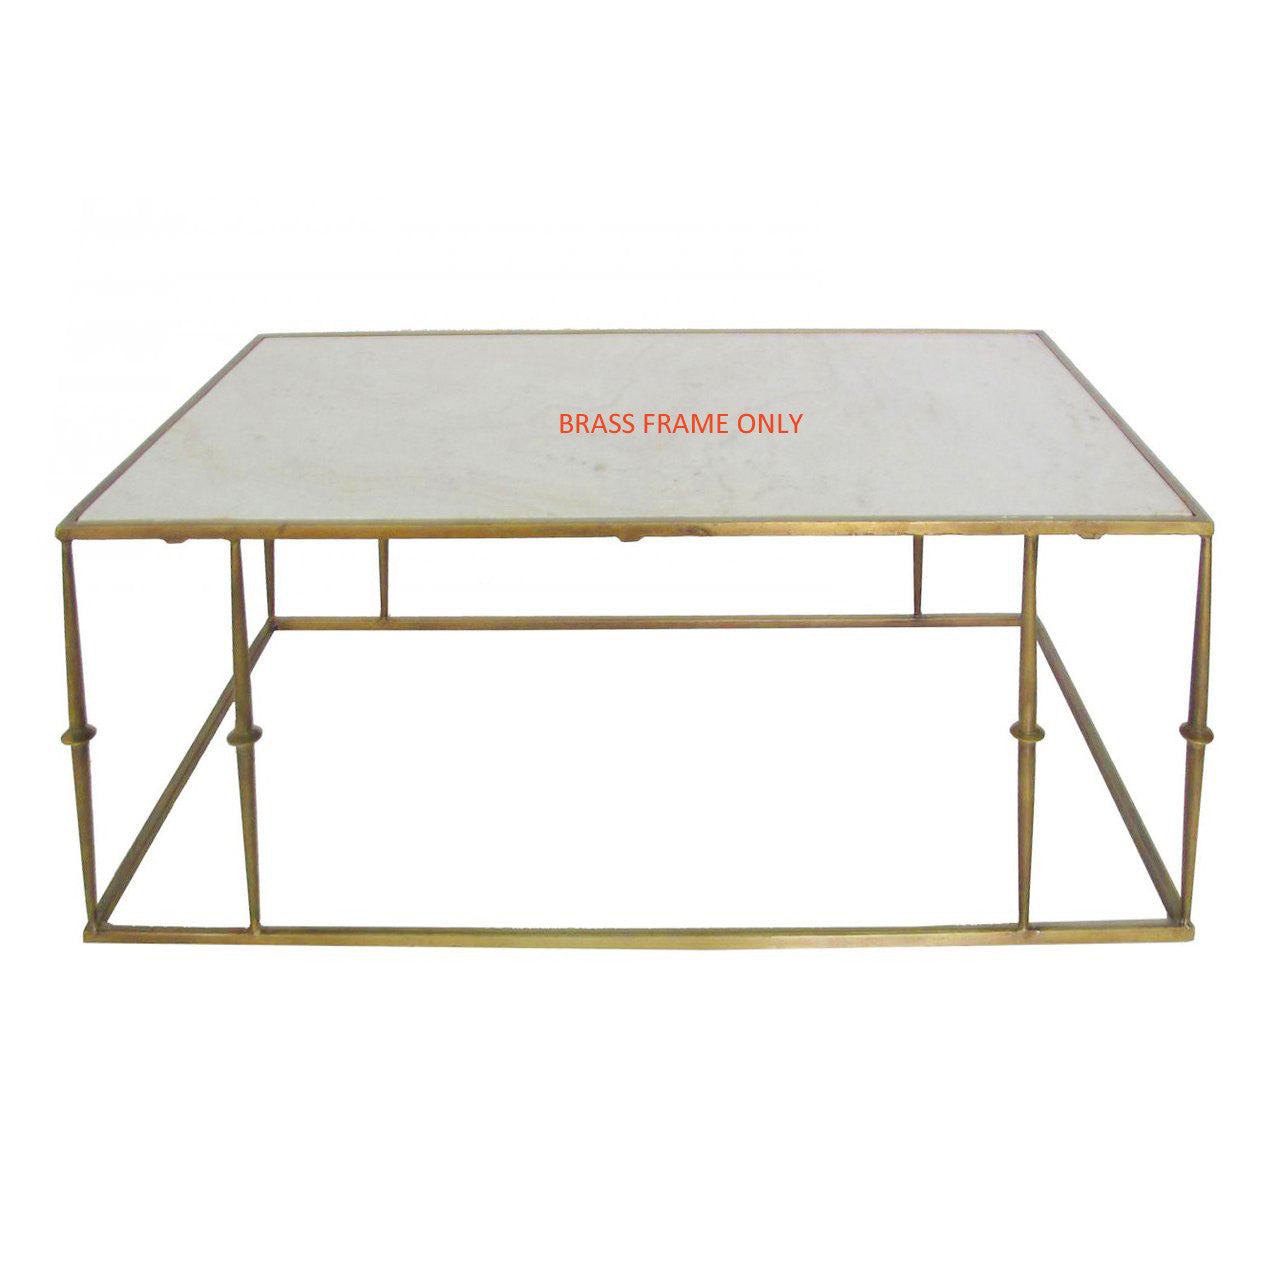 Coffee Table Brass Finish Frame ONLY